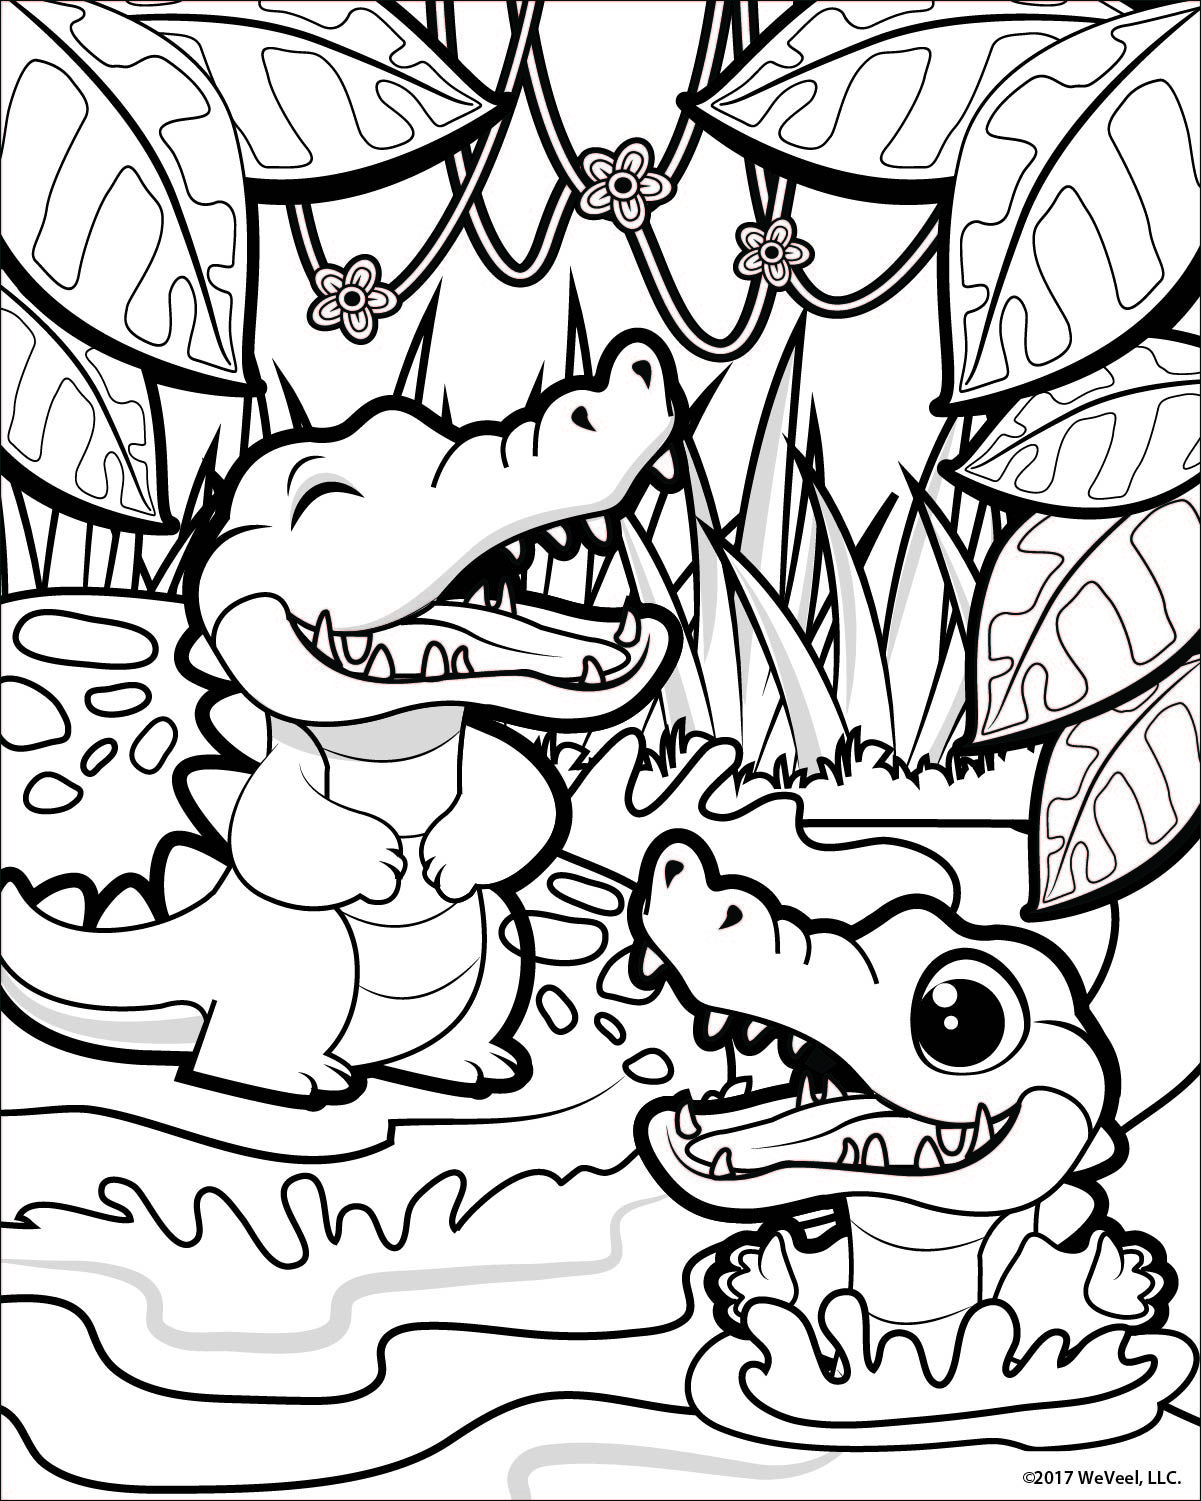 Coloring Pages Jungle Jungle Coloring Pages Monster Coloring Pages Zoo Coloring Pages